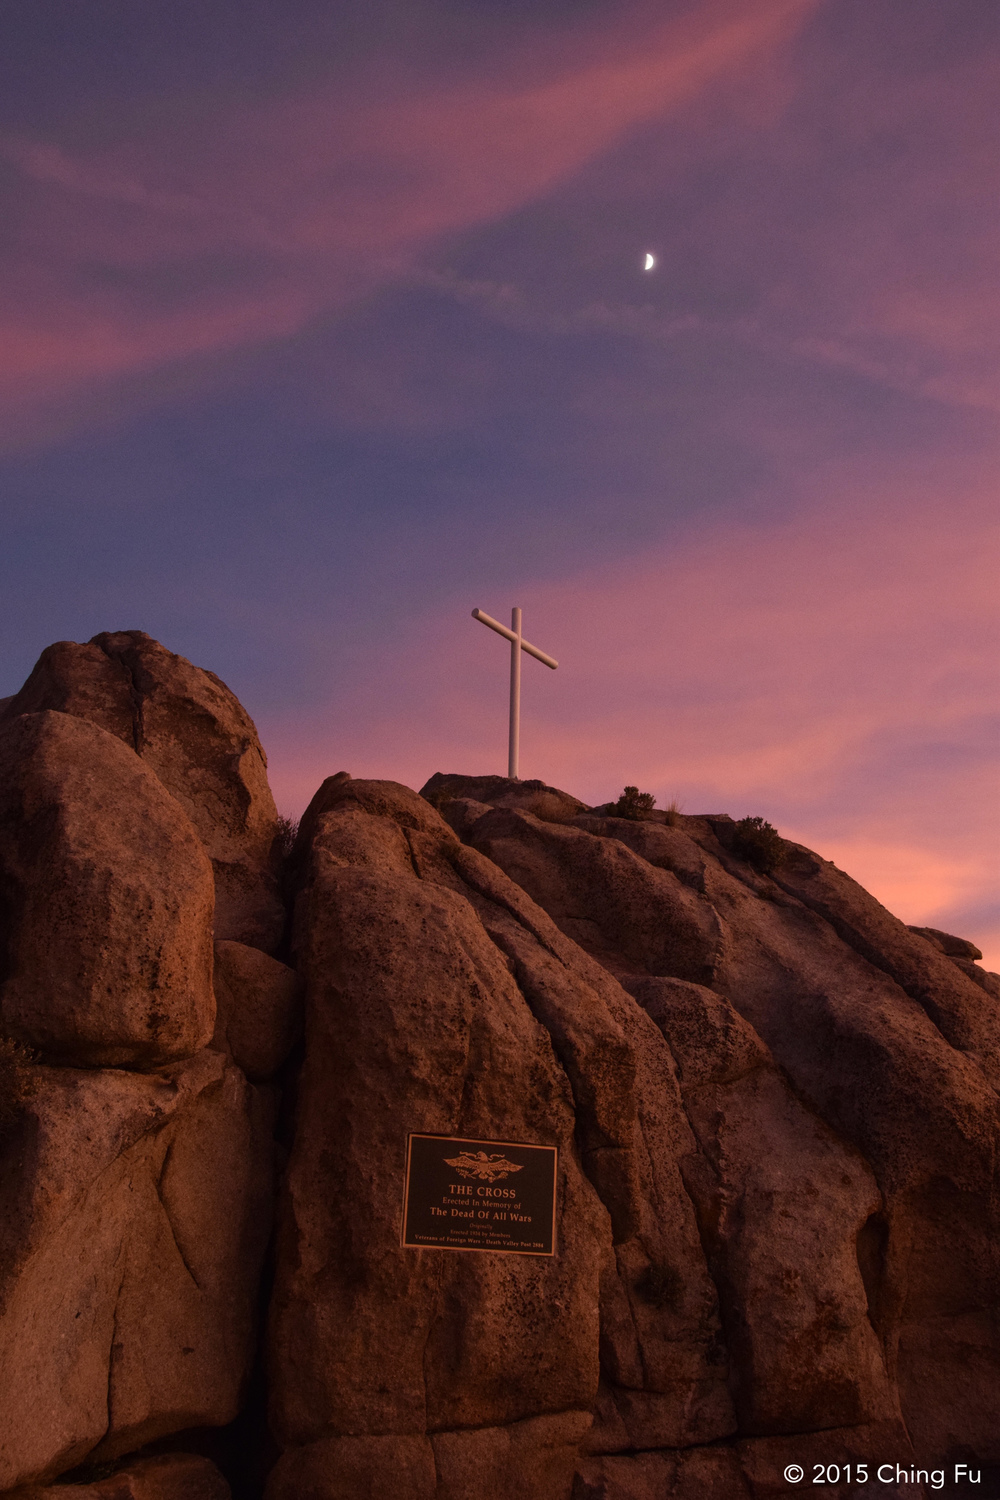 We boondocked behind Sunrise Rock aka Mojave Cross. The original cross was erected in 1934 in honor of those who died in war.